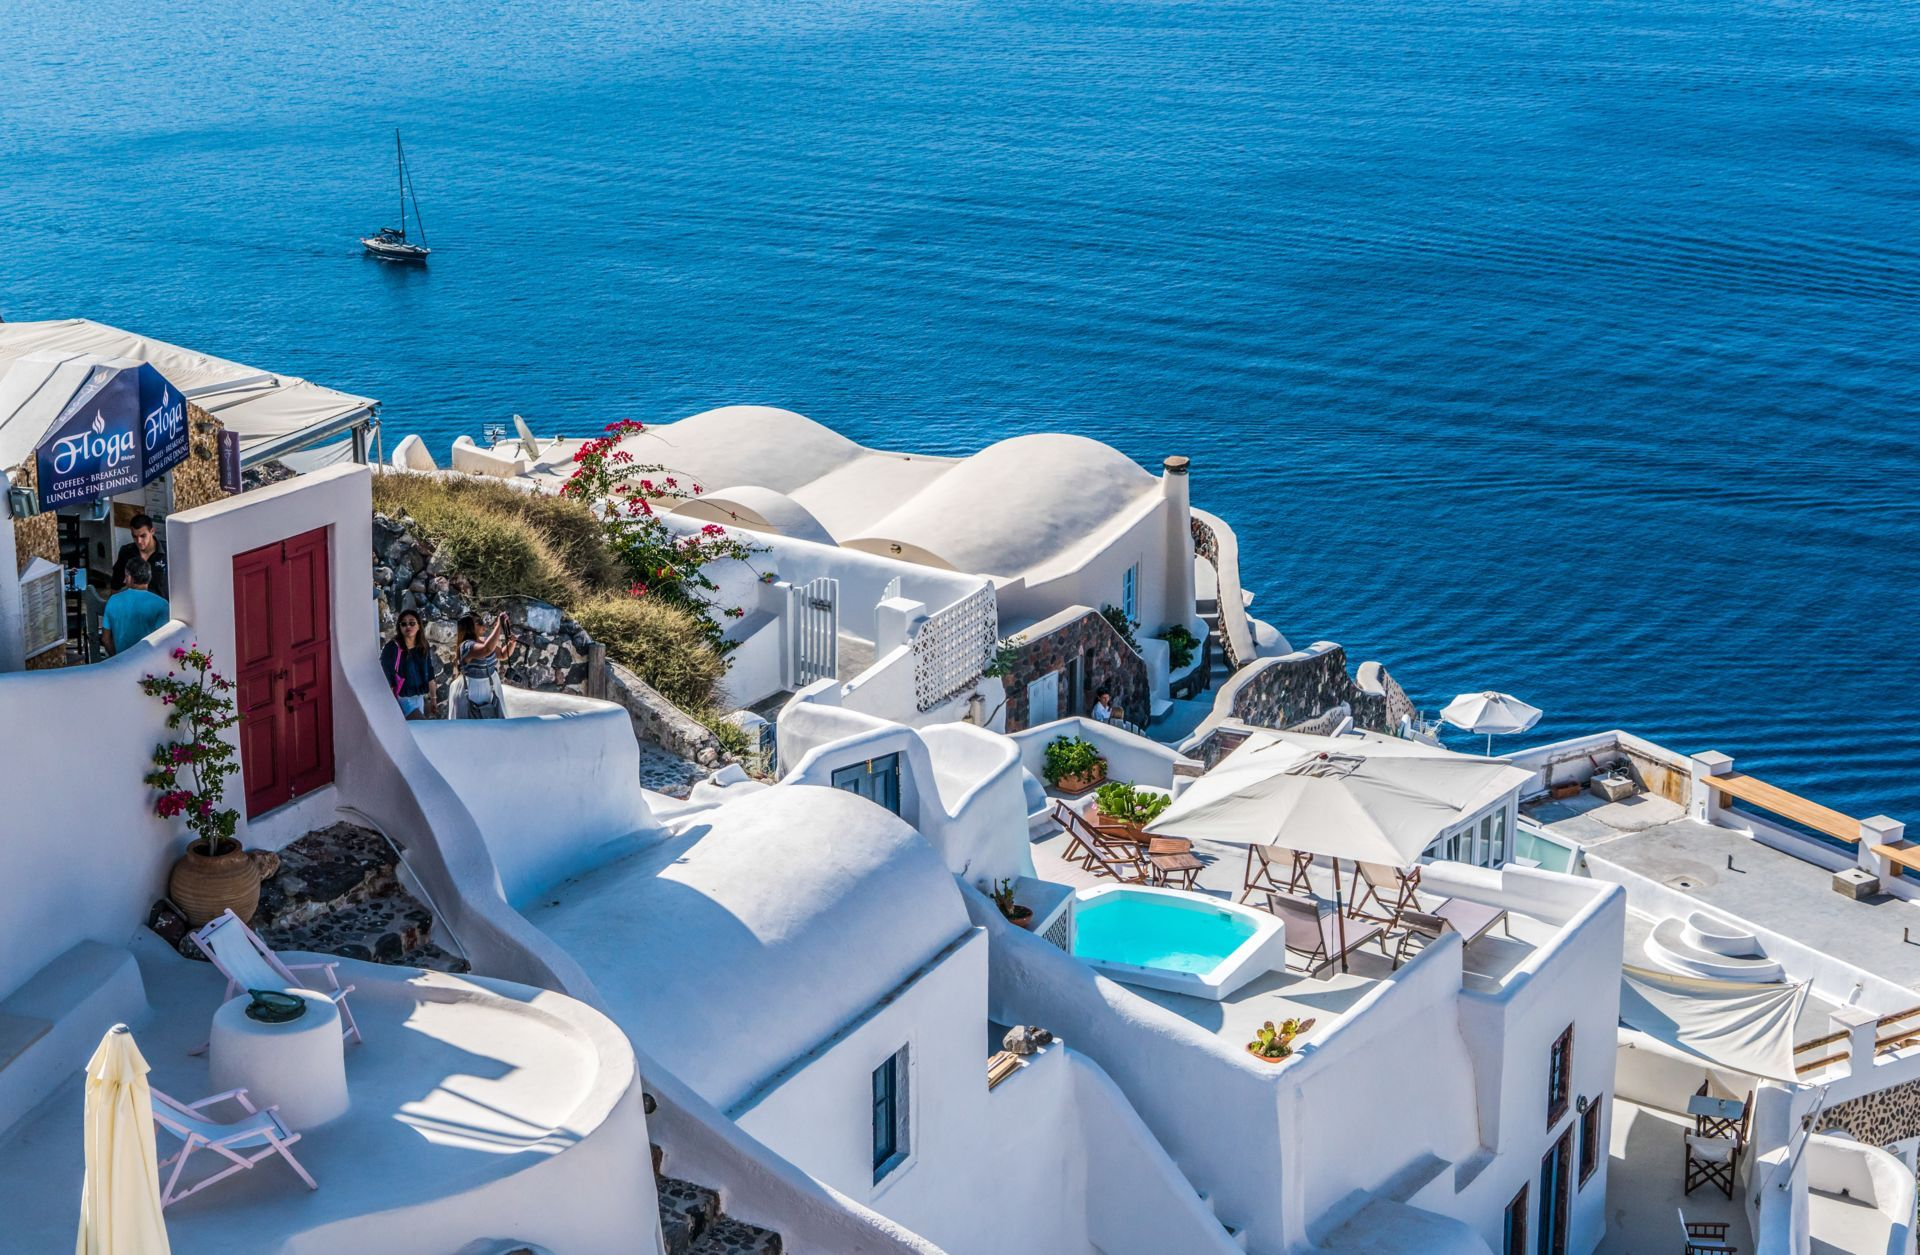 santorini-oia-greece-travel-1638